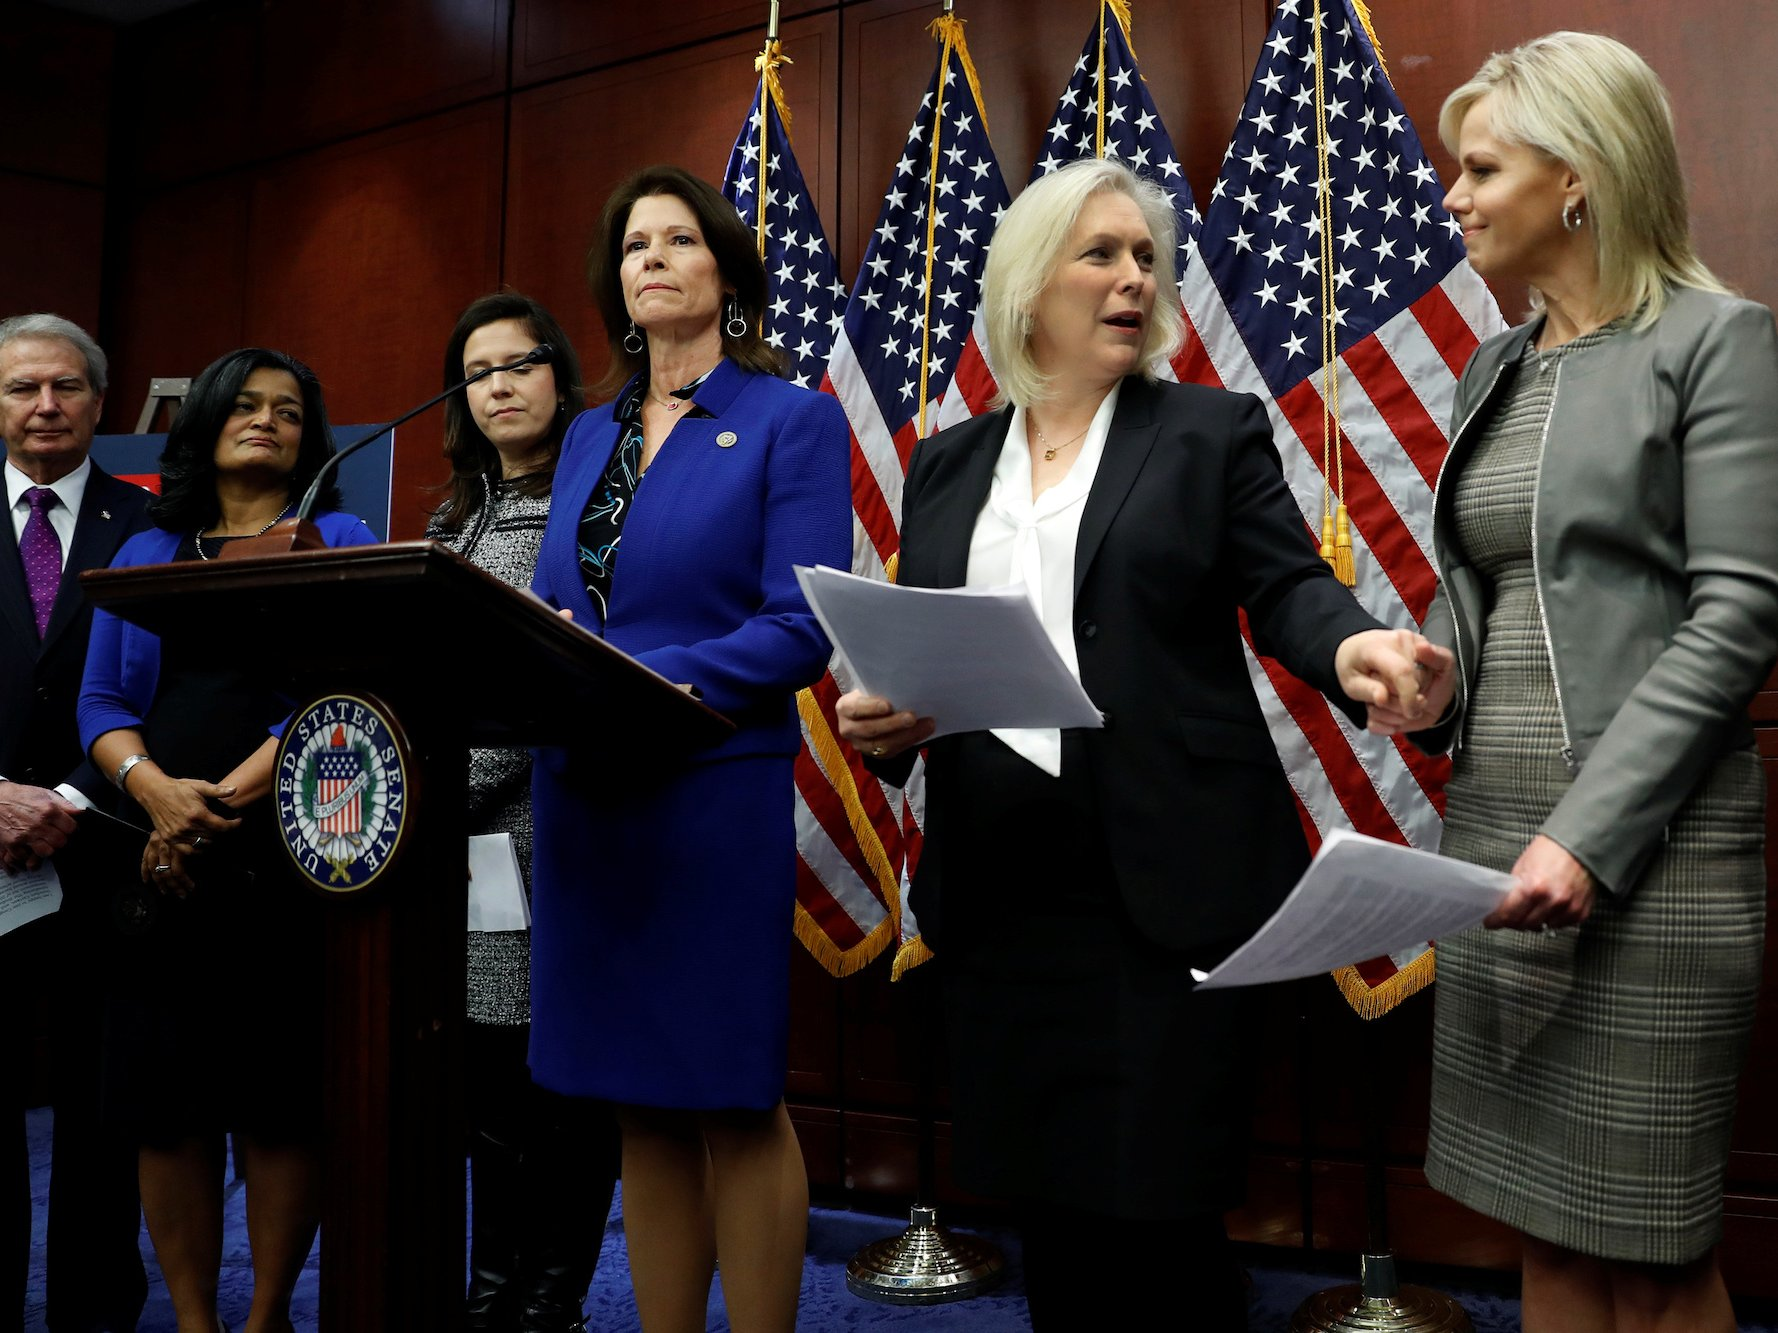 Rep. Cheri Bustos speaks at a press conference calling for an end to forced arbitration as Sen. Kirsten Gillibrand greets Gretchen Carlson on Capitol Hill in Washington, U.S., December 6, 2017.